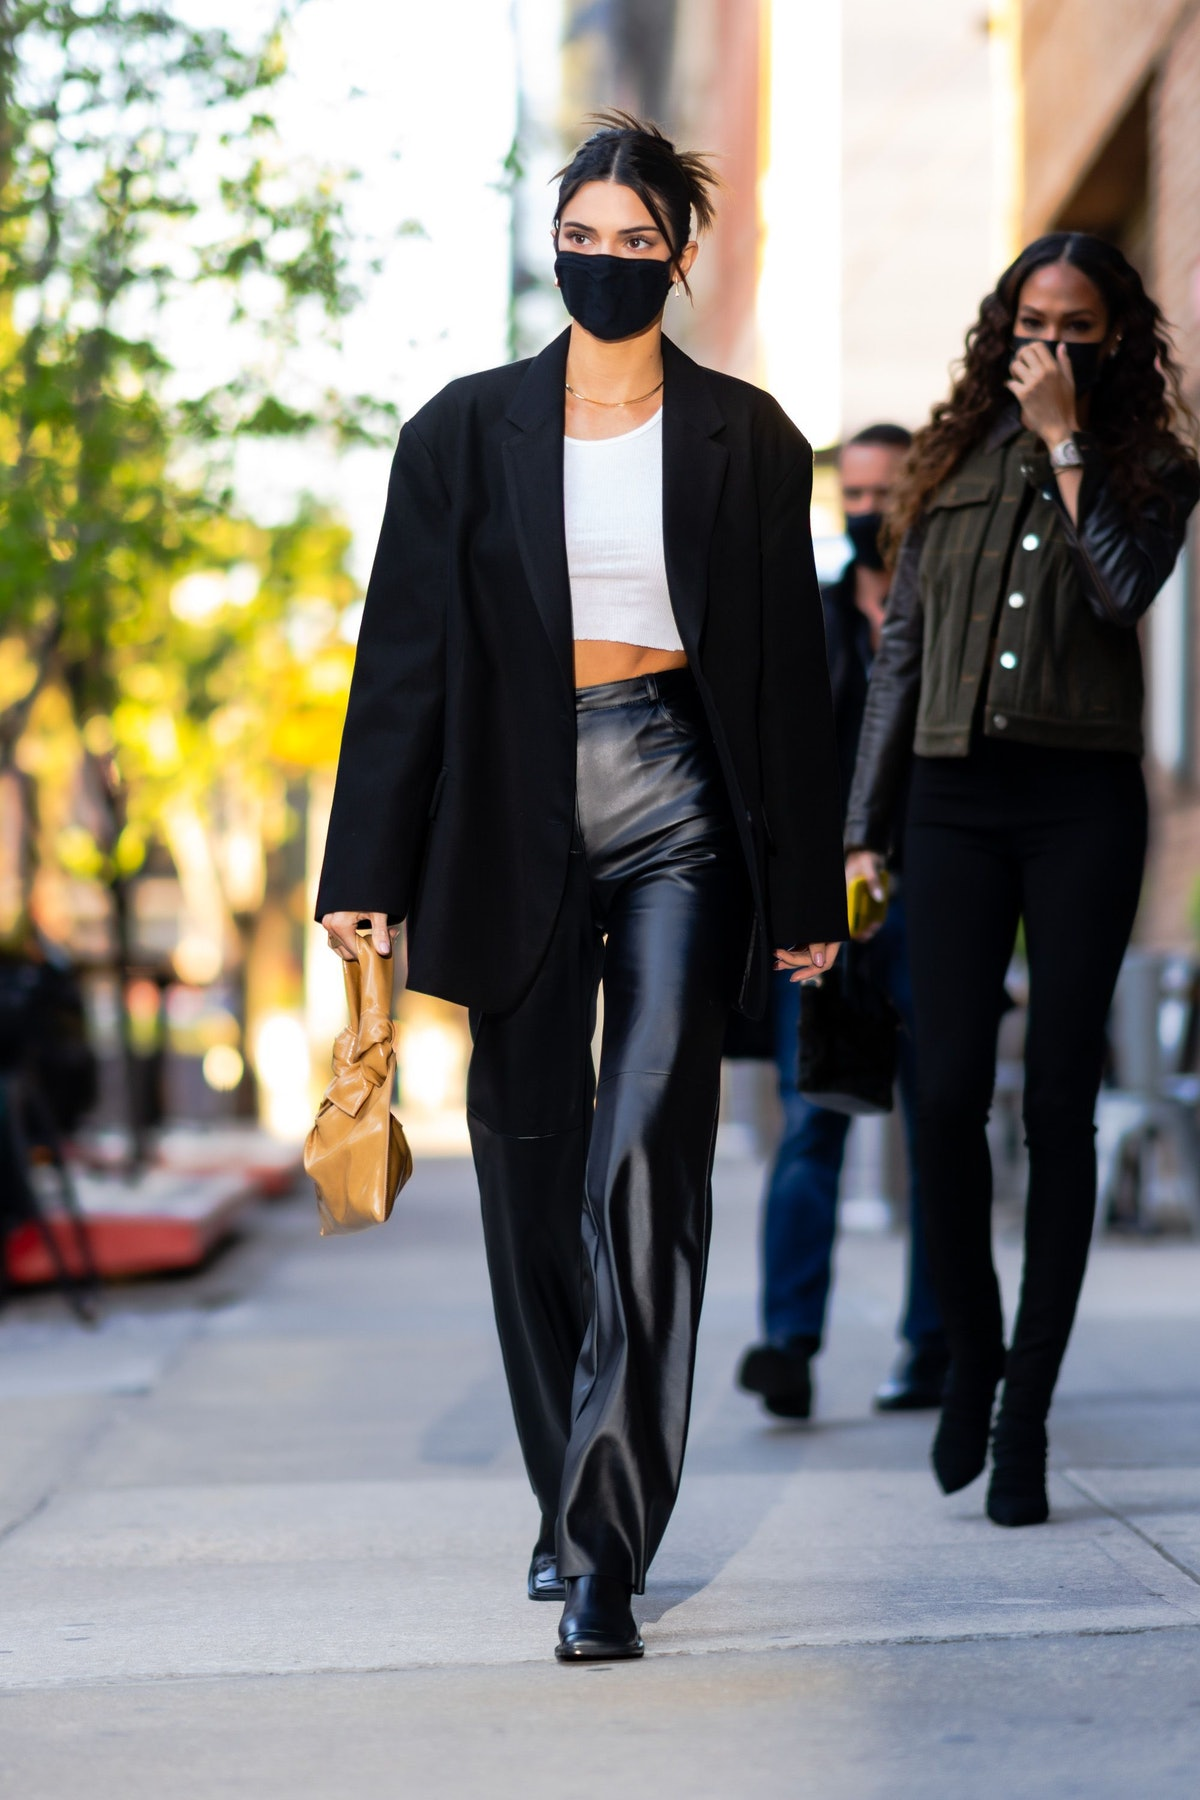 Kendall Jenner and Joan Smalls are seen in Tribeca in New York City in April 2021.